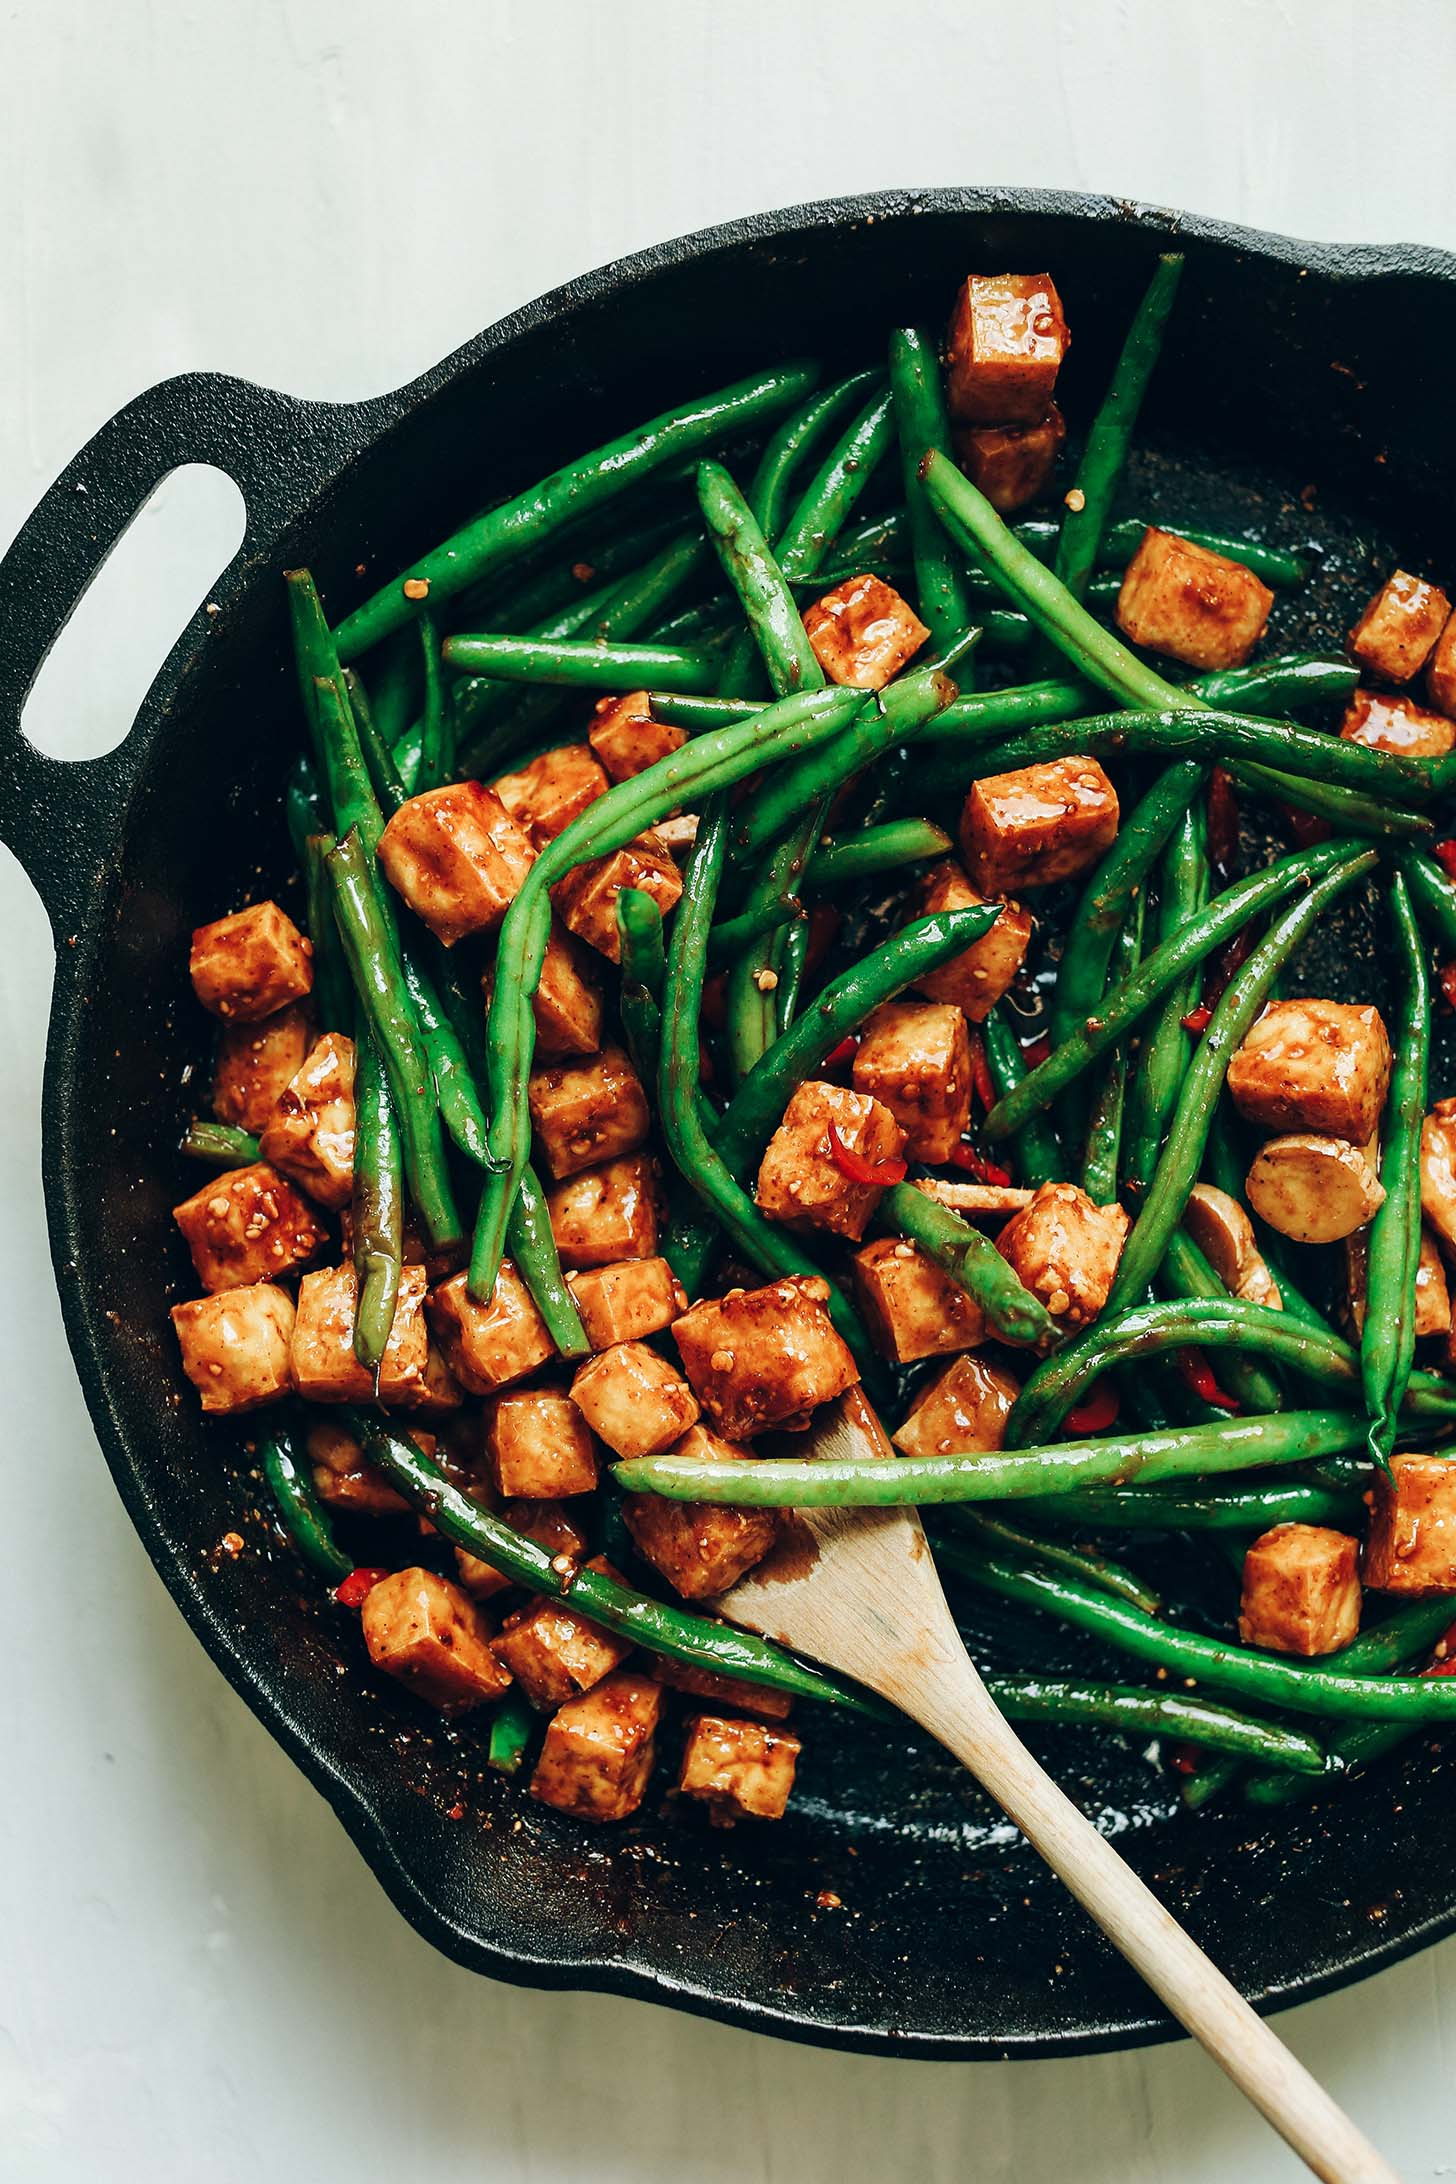 Cast iron skillet filled with green beans, tofu, and sauce for Almond Butter Tofu Stir-Fry